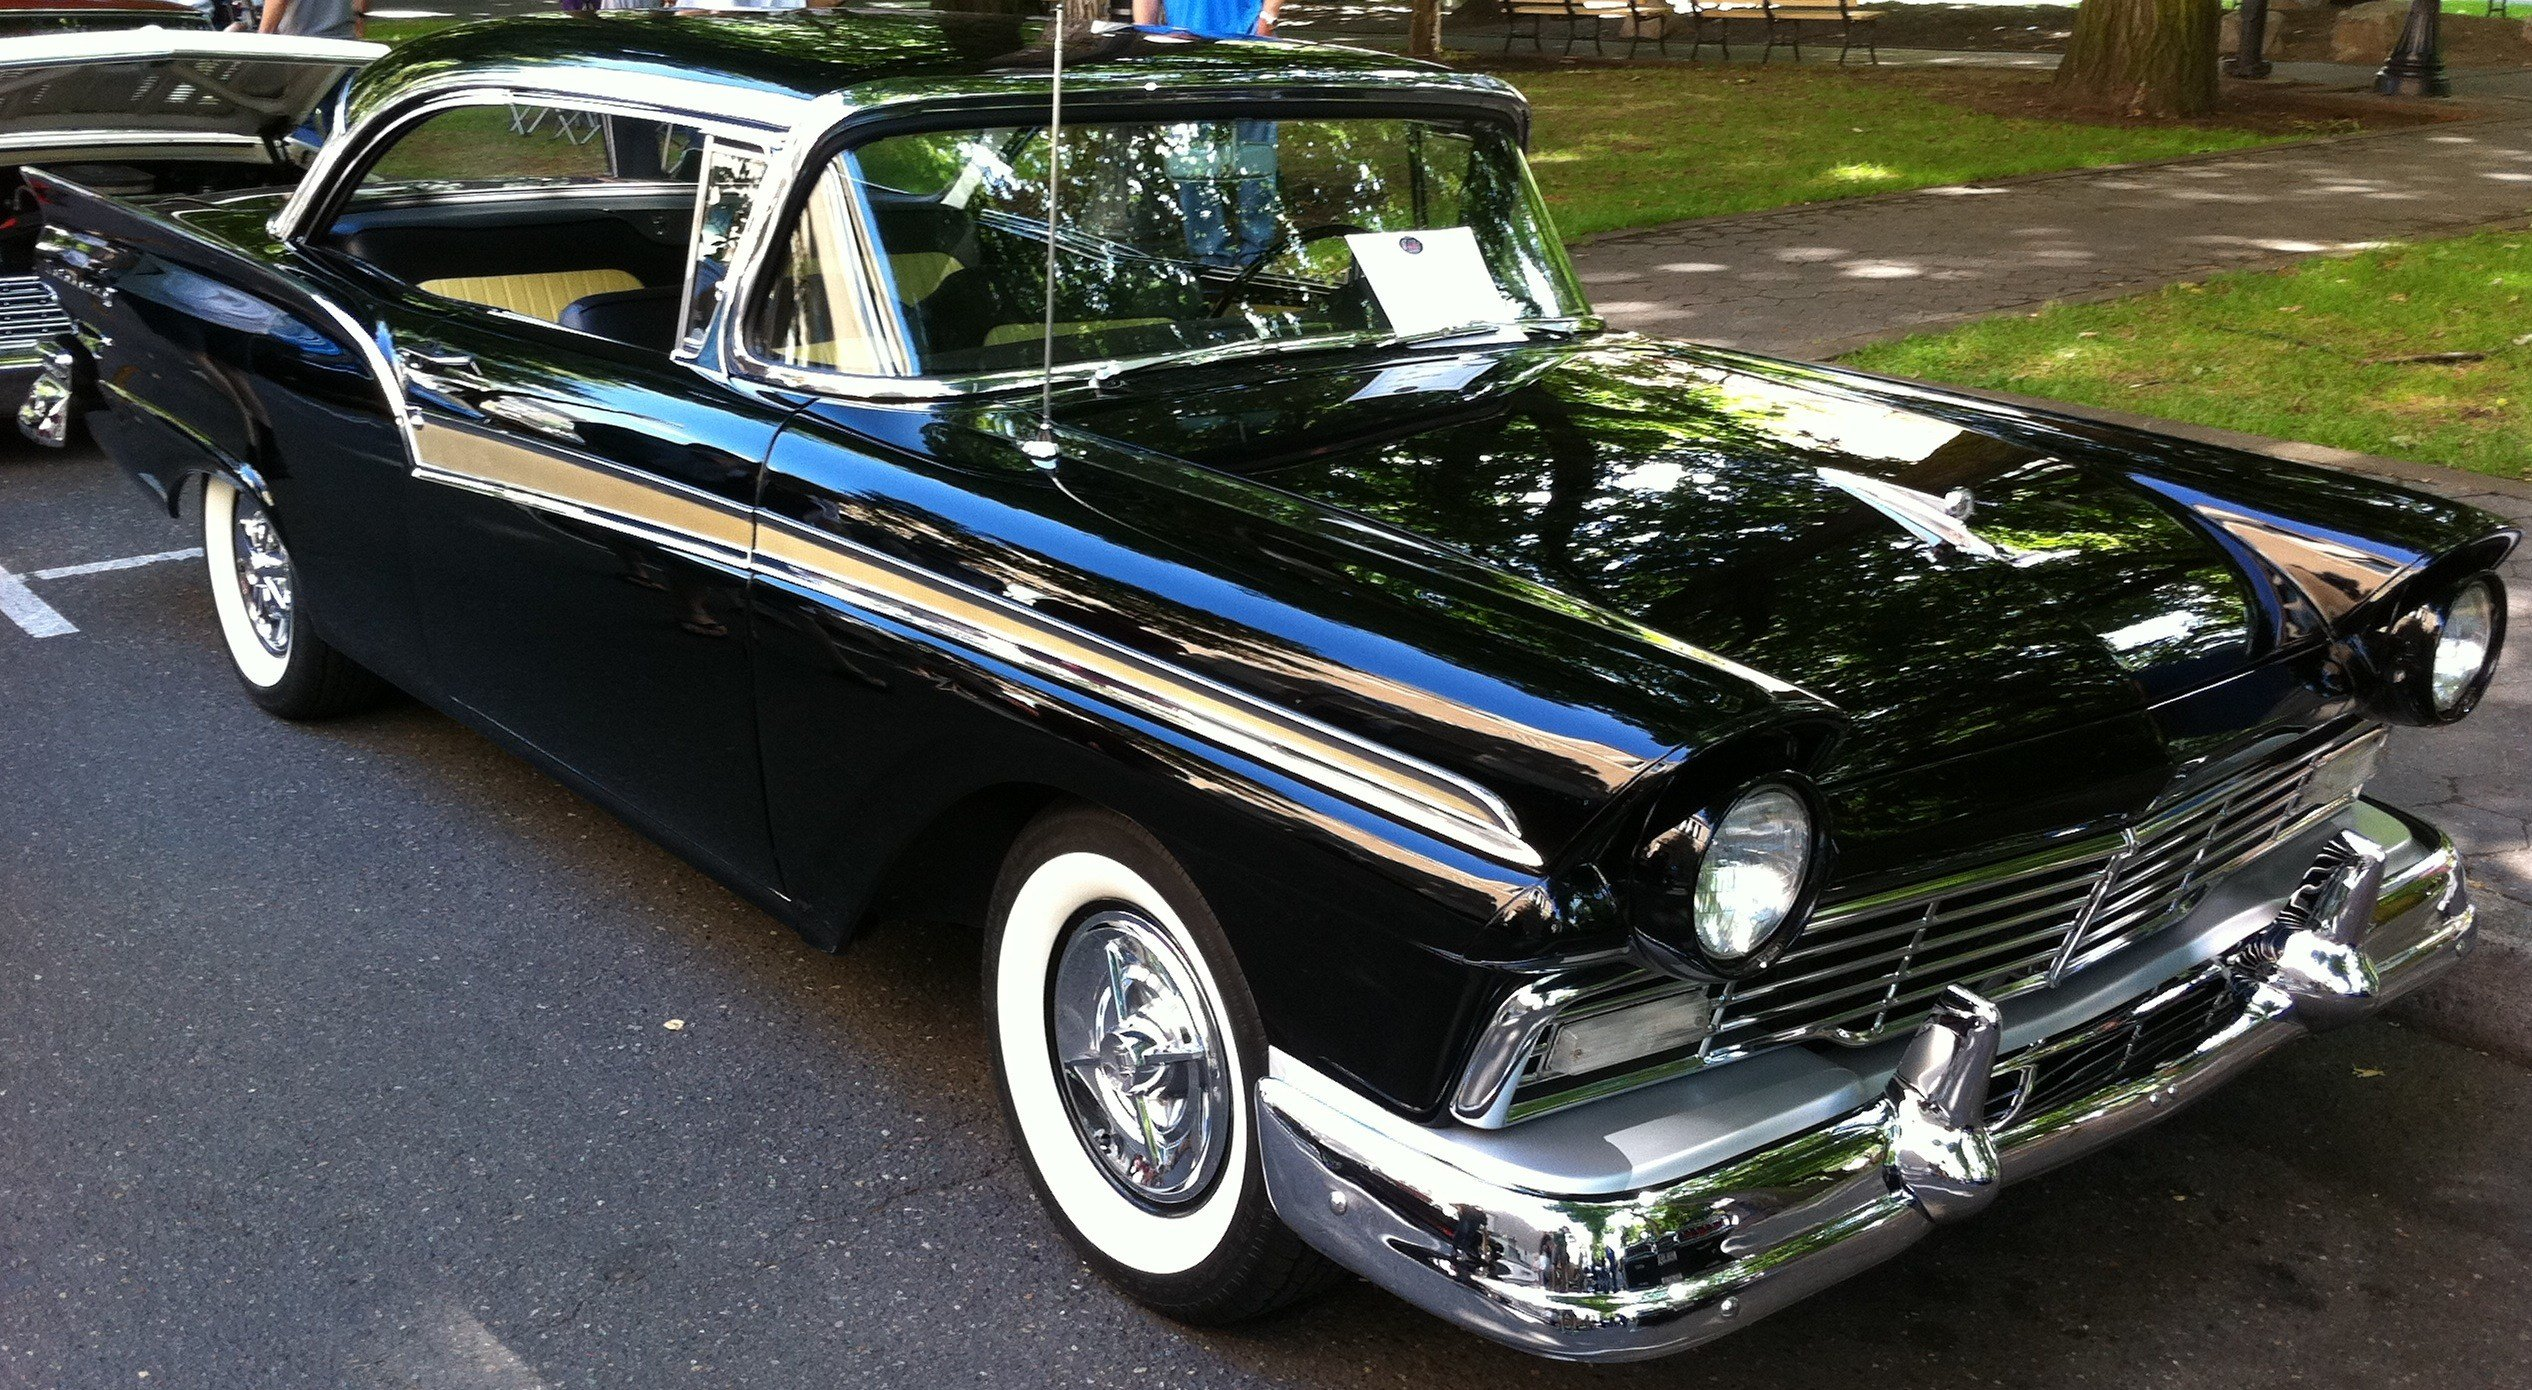 Latest 1957 Ford Fairlane 500 Cars Sale Free Download